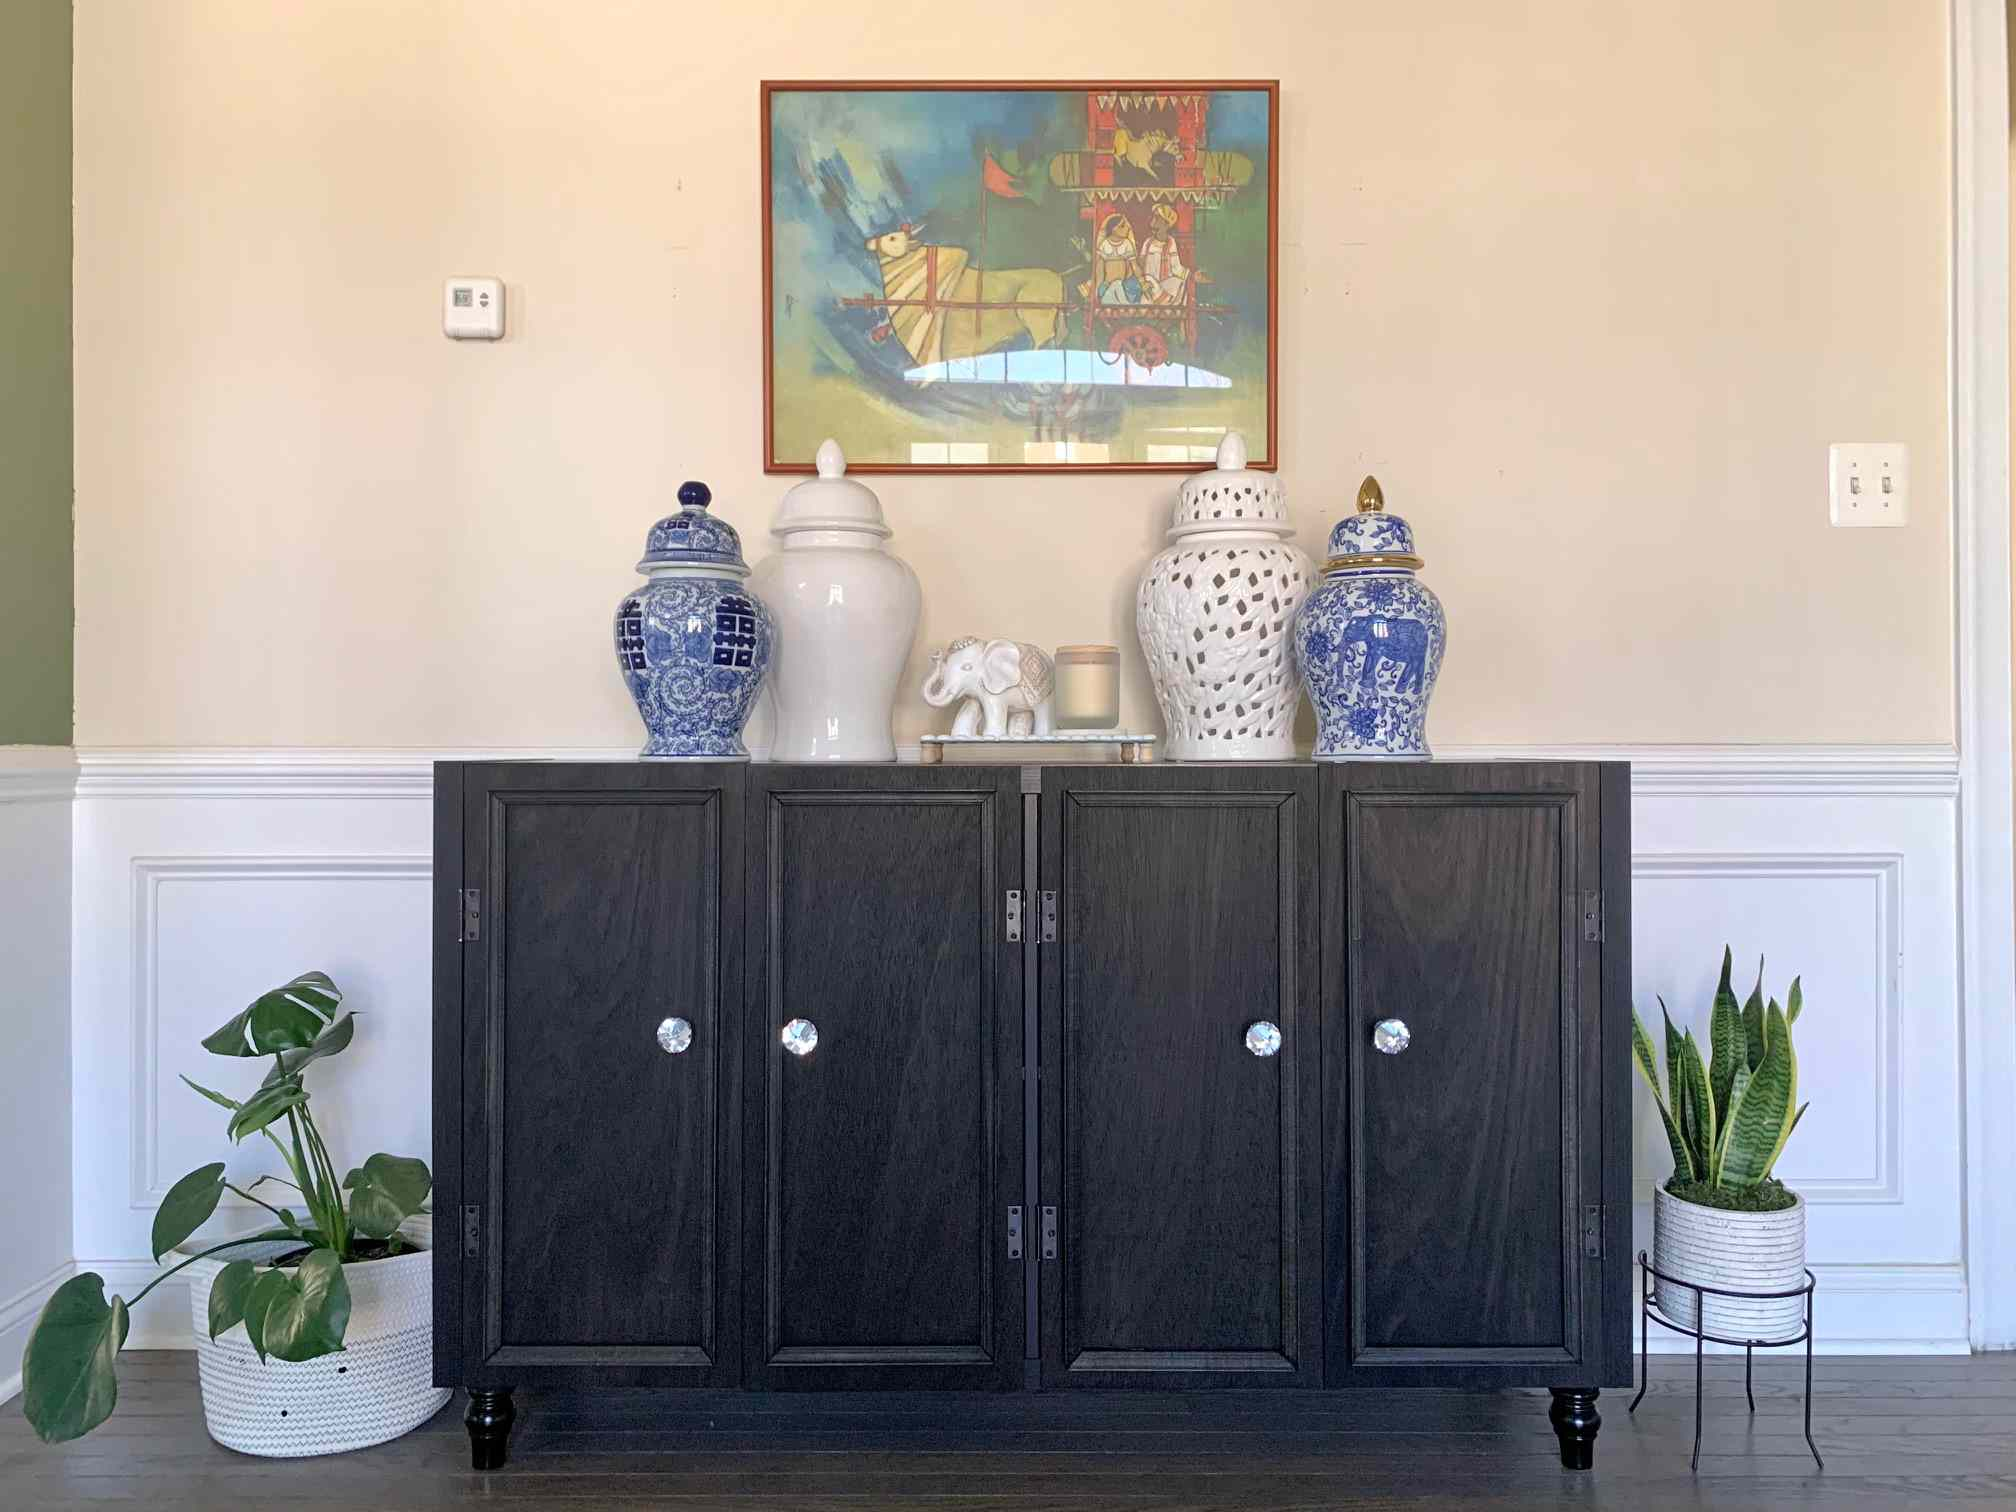 Black credenza with blue and white ceramic vases on top